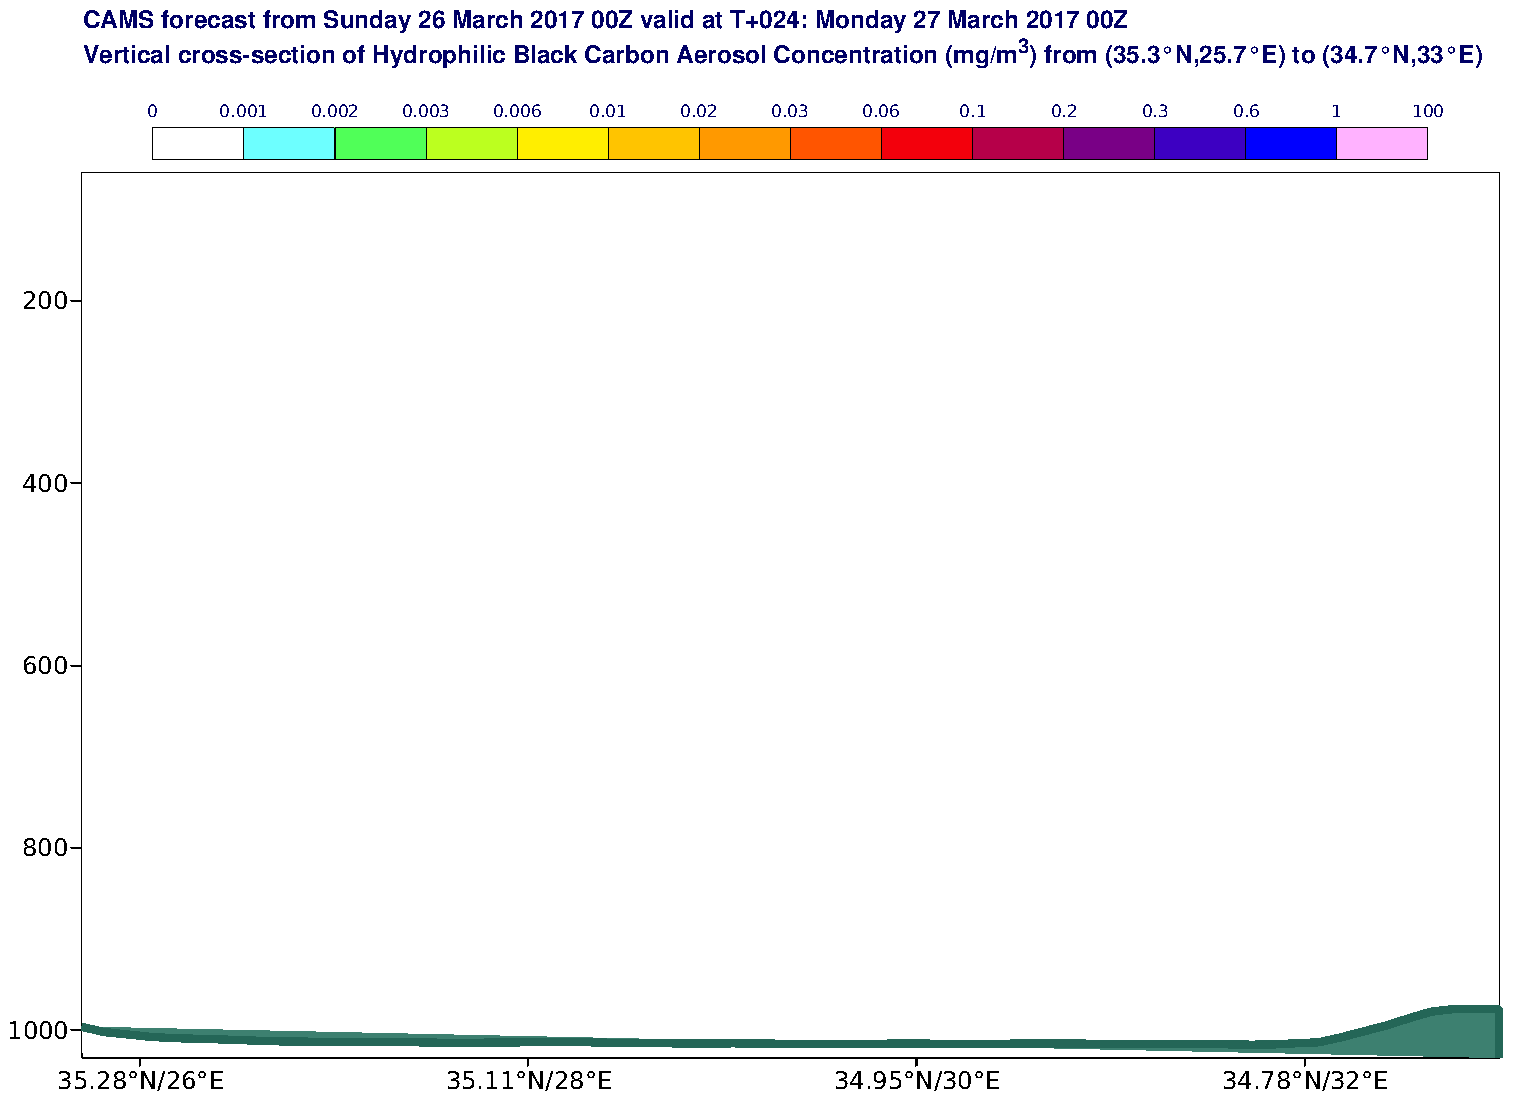 Vertical cross-section of Hydrophilic Black Carbon Aerosol Concentration (mg/m3) valid at T24 - 2017-03-27 00:00